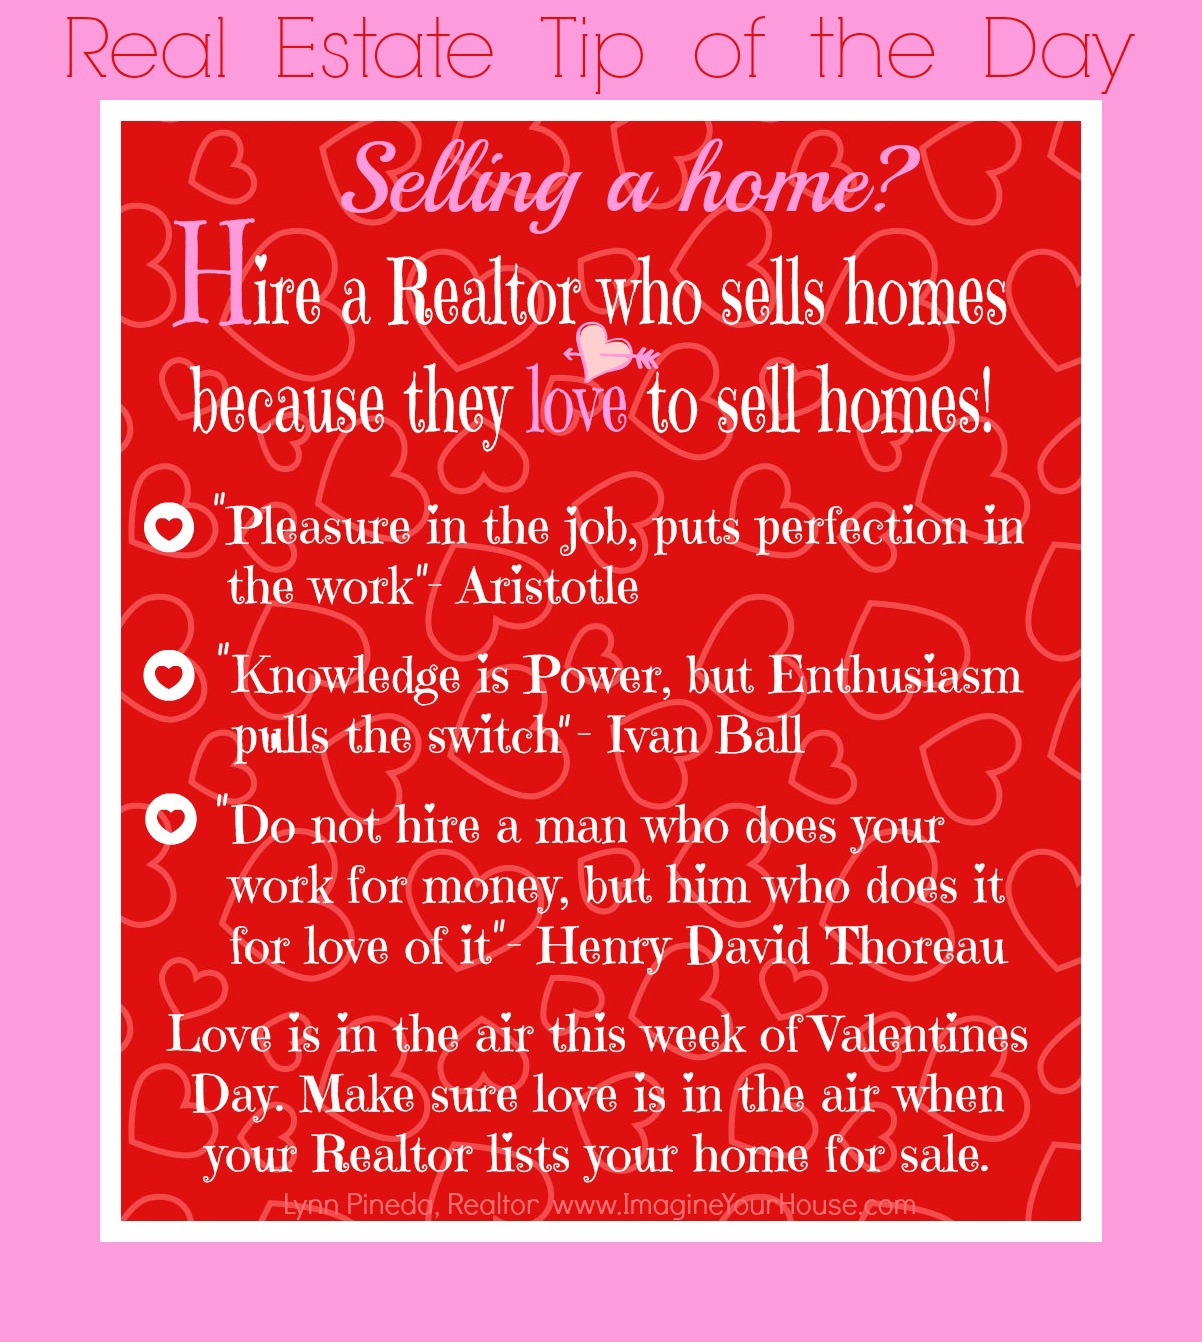 Real Estate Tip of the Day Feb 13 2014 IYH